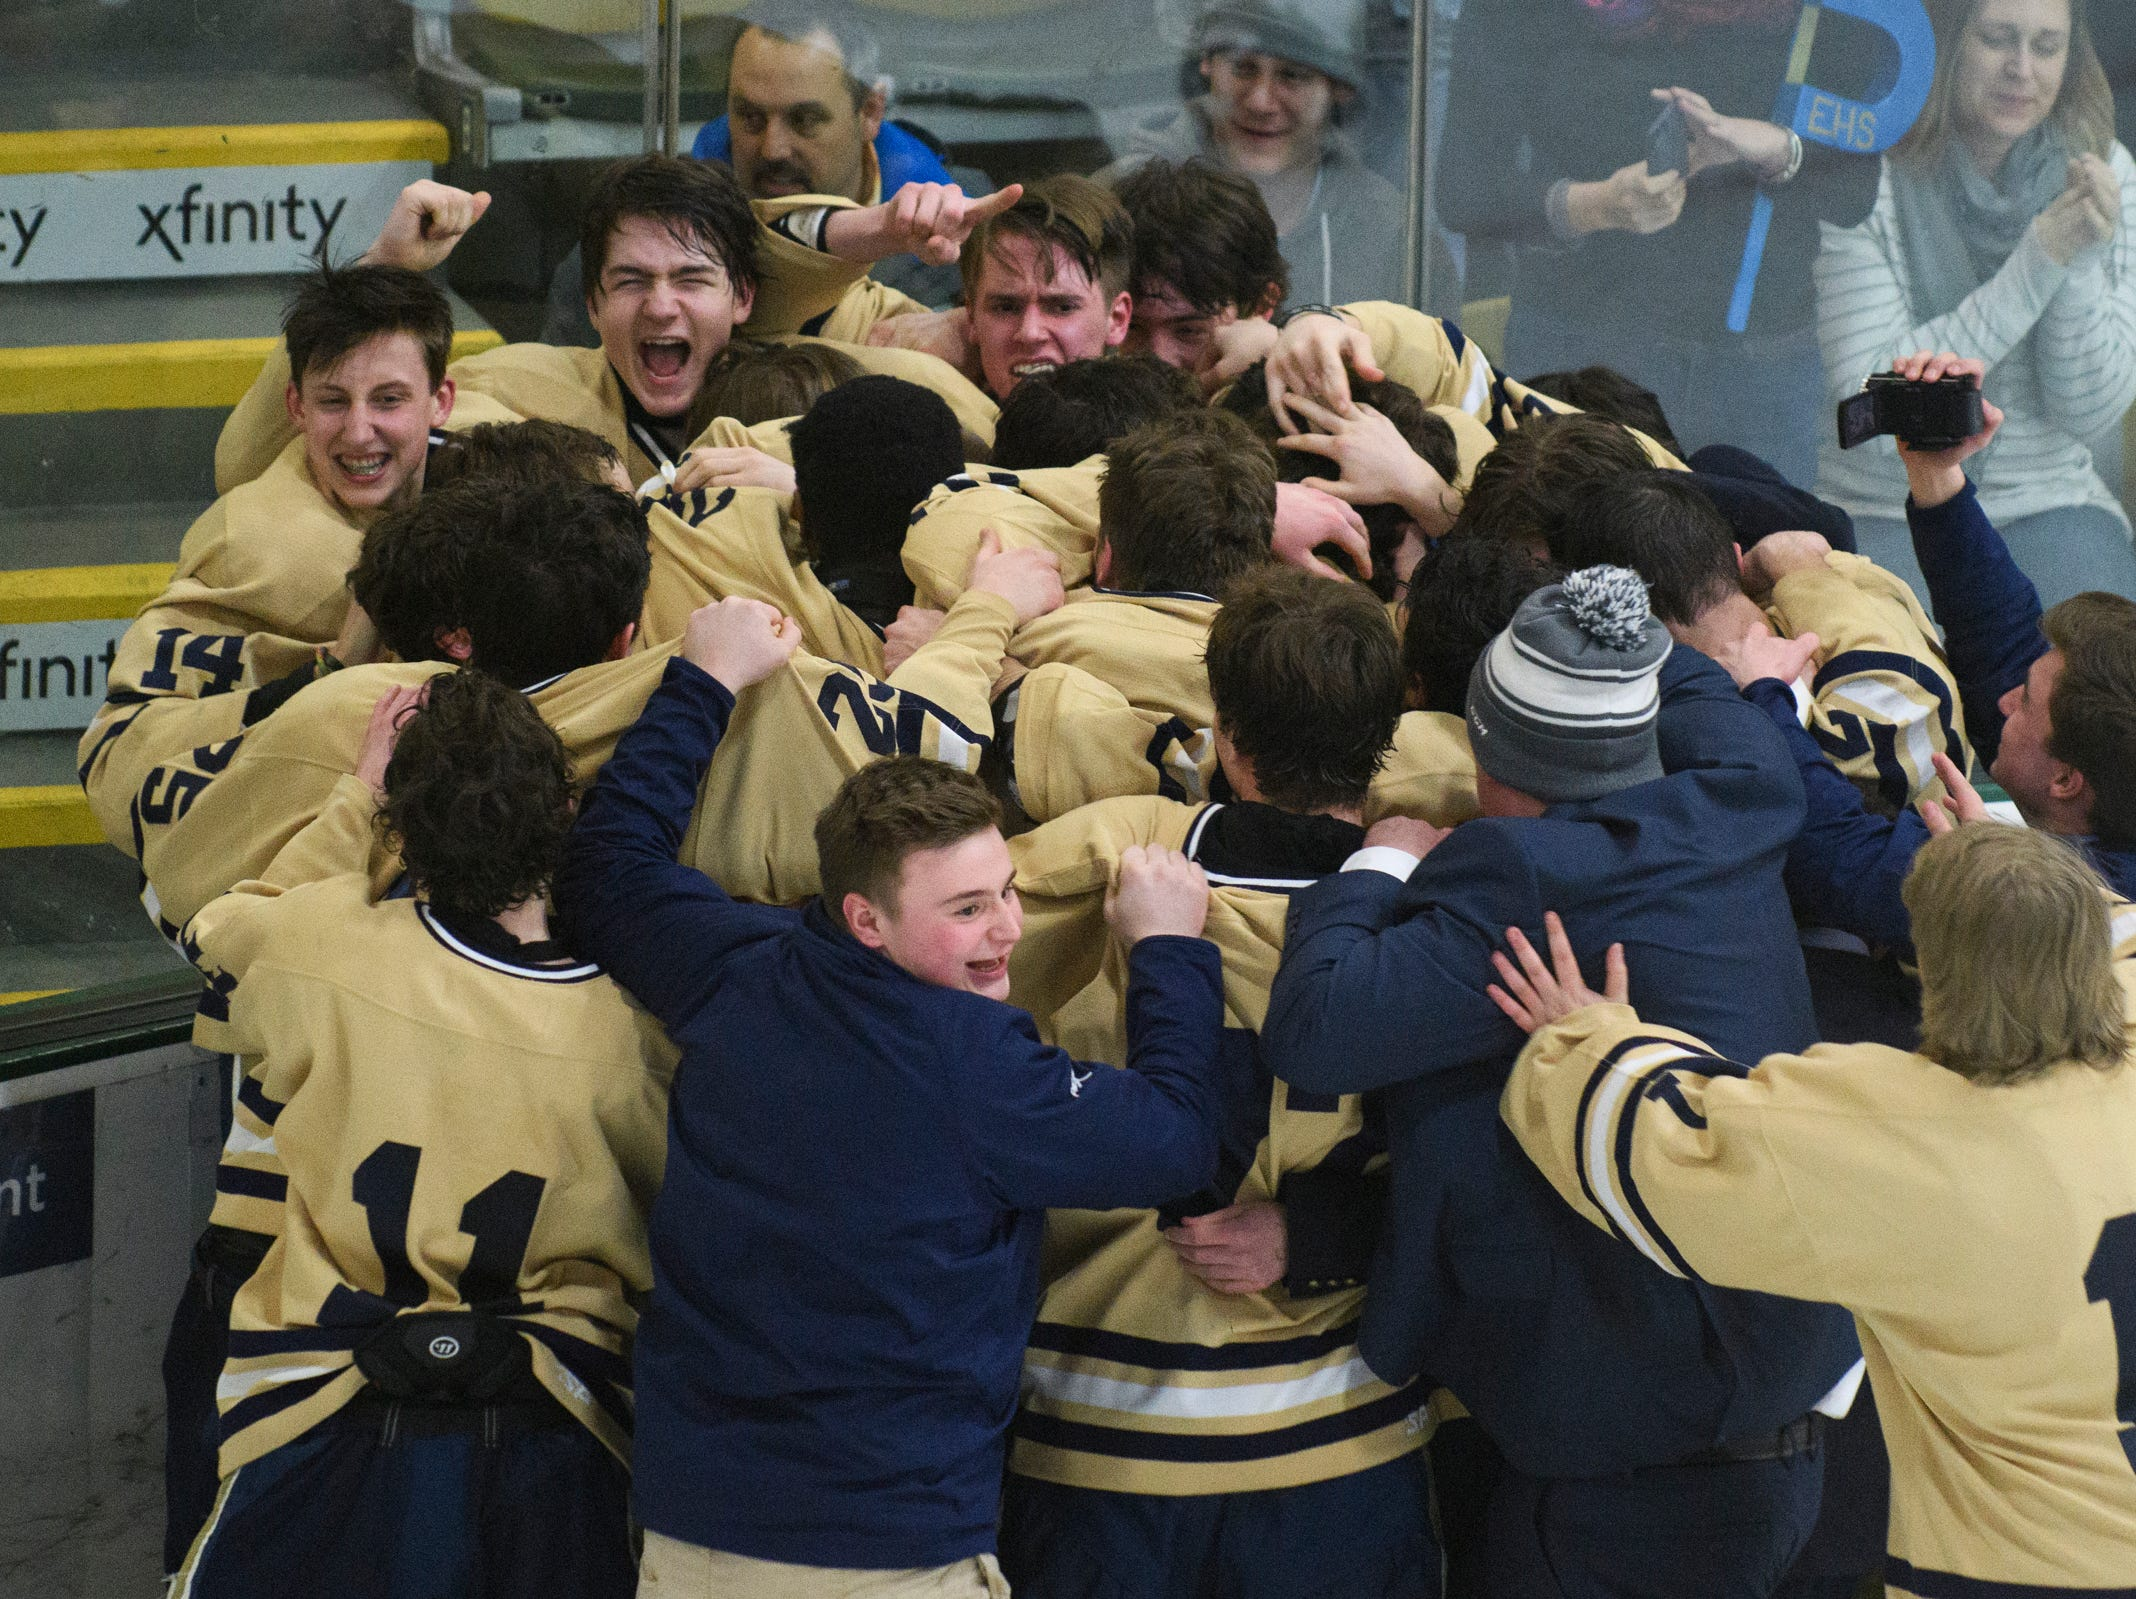 Essex celebrates the championship during the DI boys hockey championship game between the Rice Green Knights and the Essex Hornets at Gutterson Field House on Wednesday night March 13, 2019 in Burlington, Vermont.